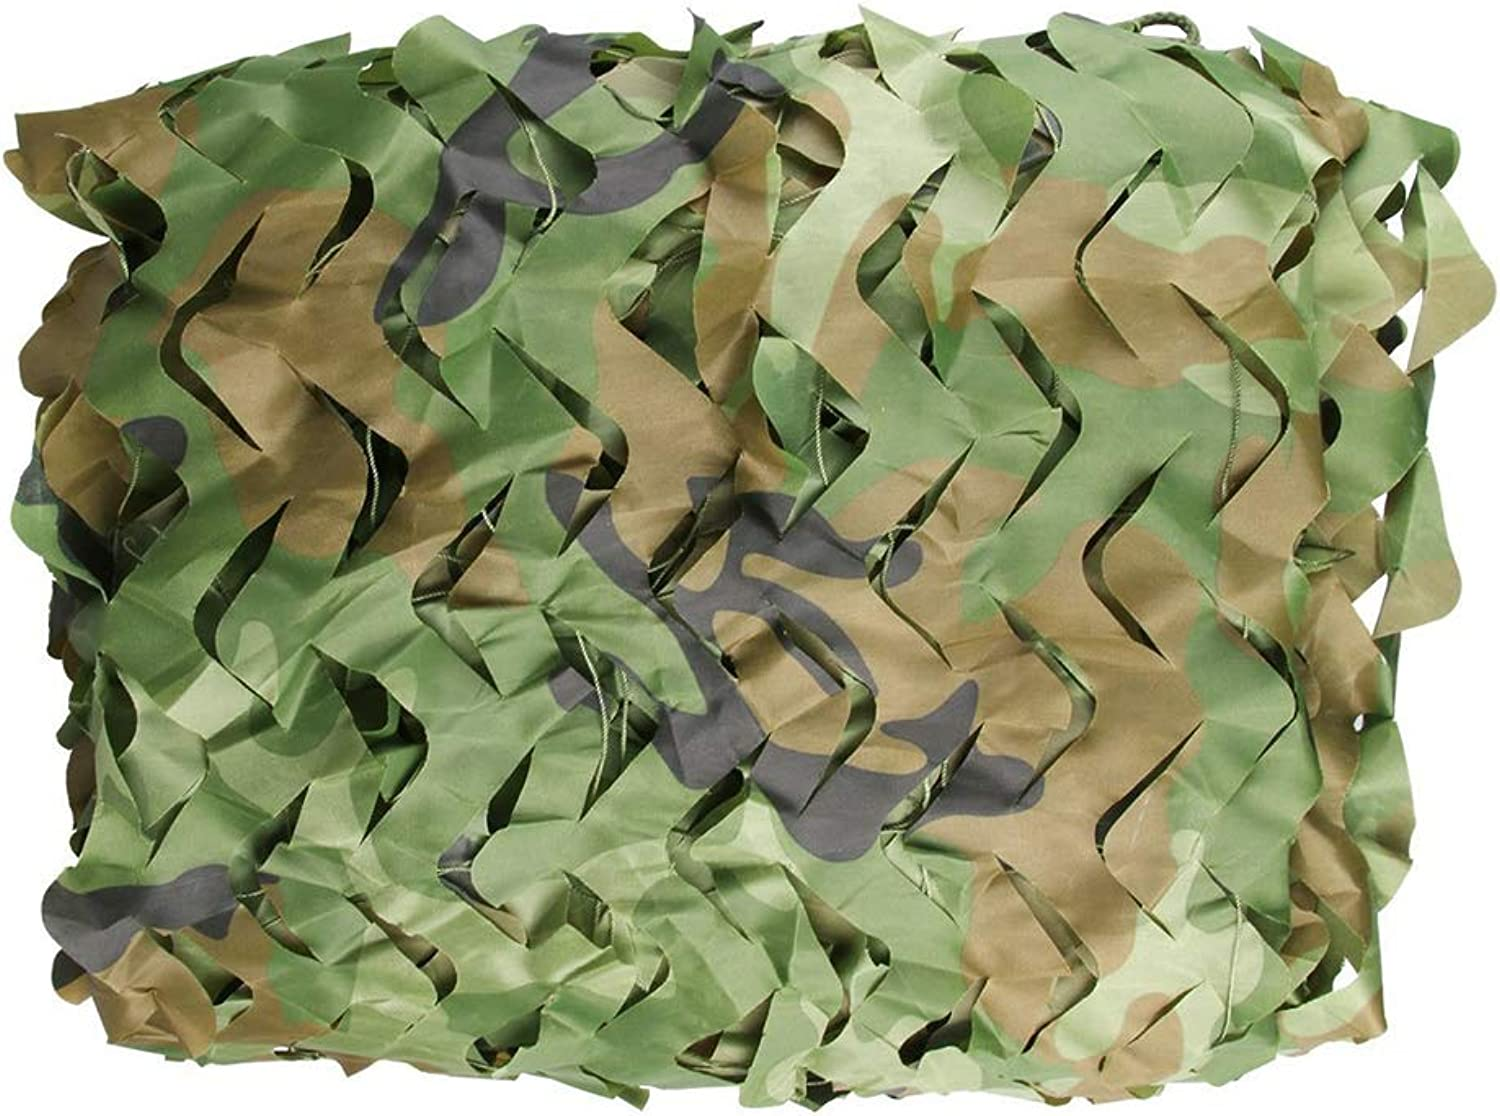 Camo Netting  Woodland Hunting Camouflage Netting  UV Resistant Shade Blinds  Outdoor Jungle Sunscreen Nets Oxford Fabric Shooting Blind Camping Photography